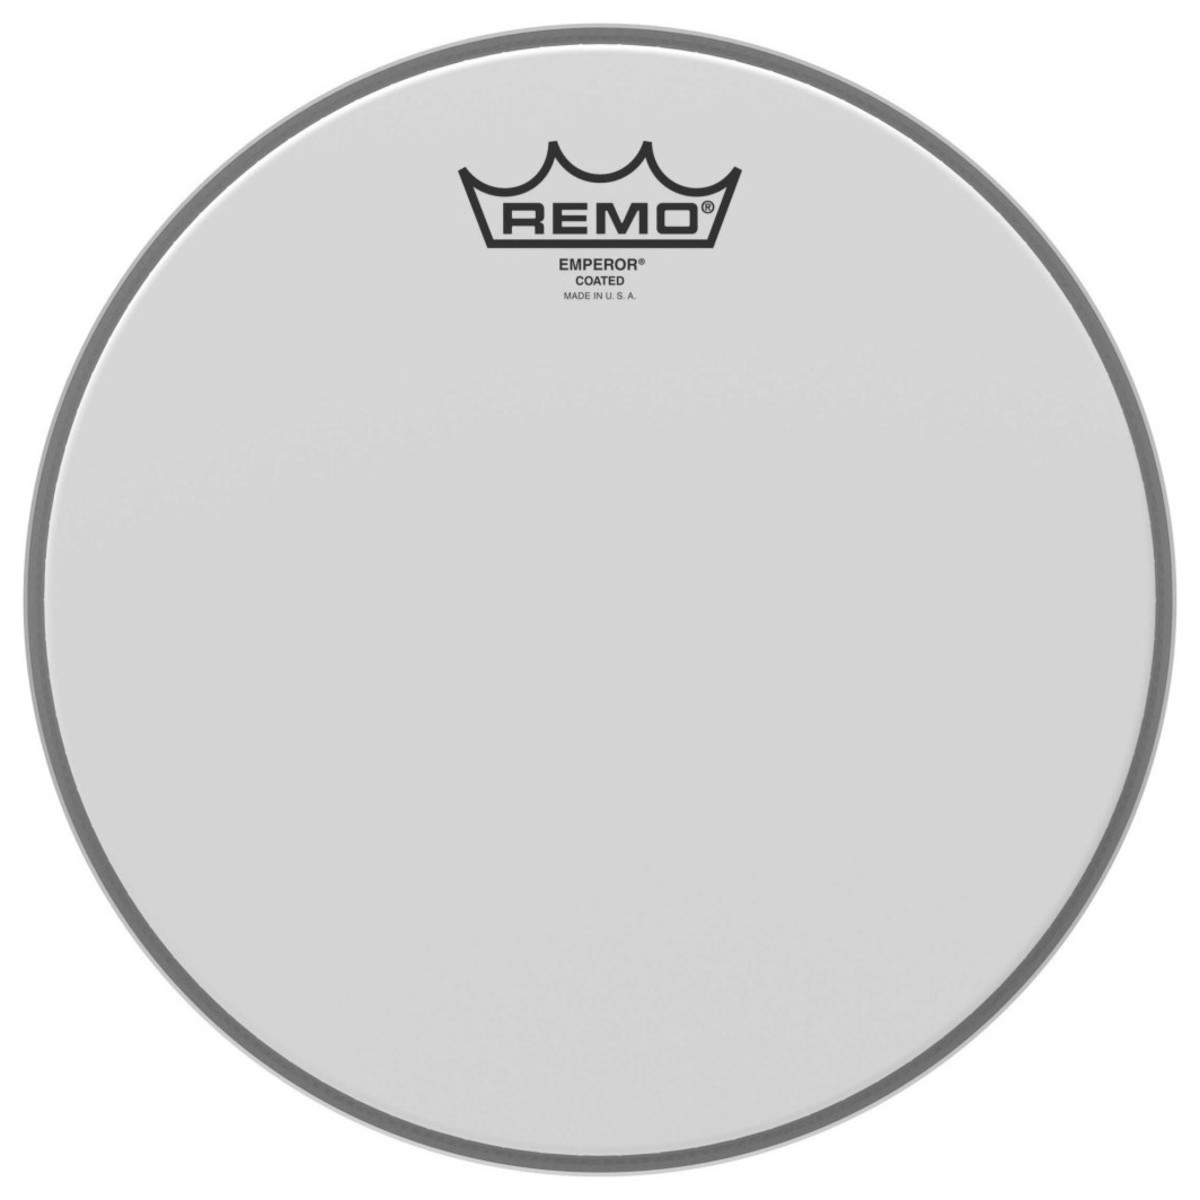 Remo Emperor Coated 13 Drum Head